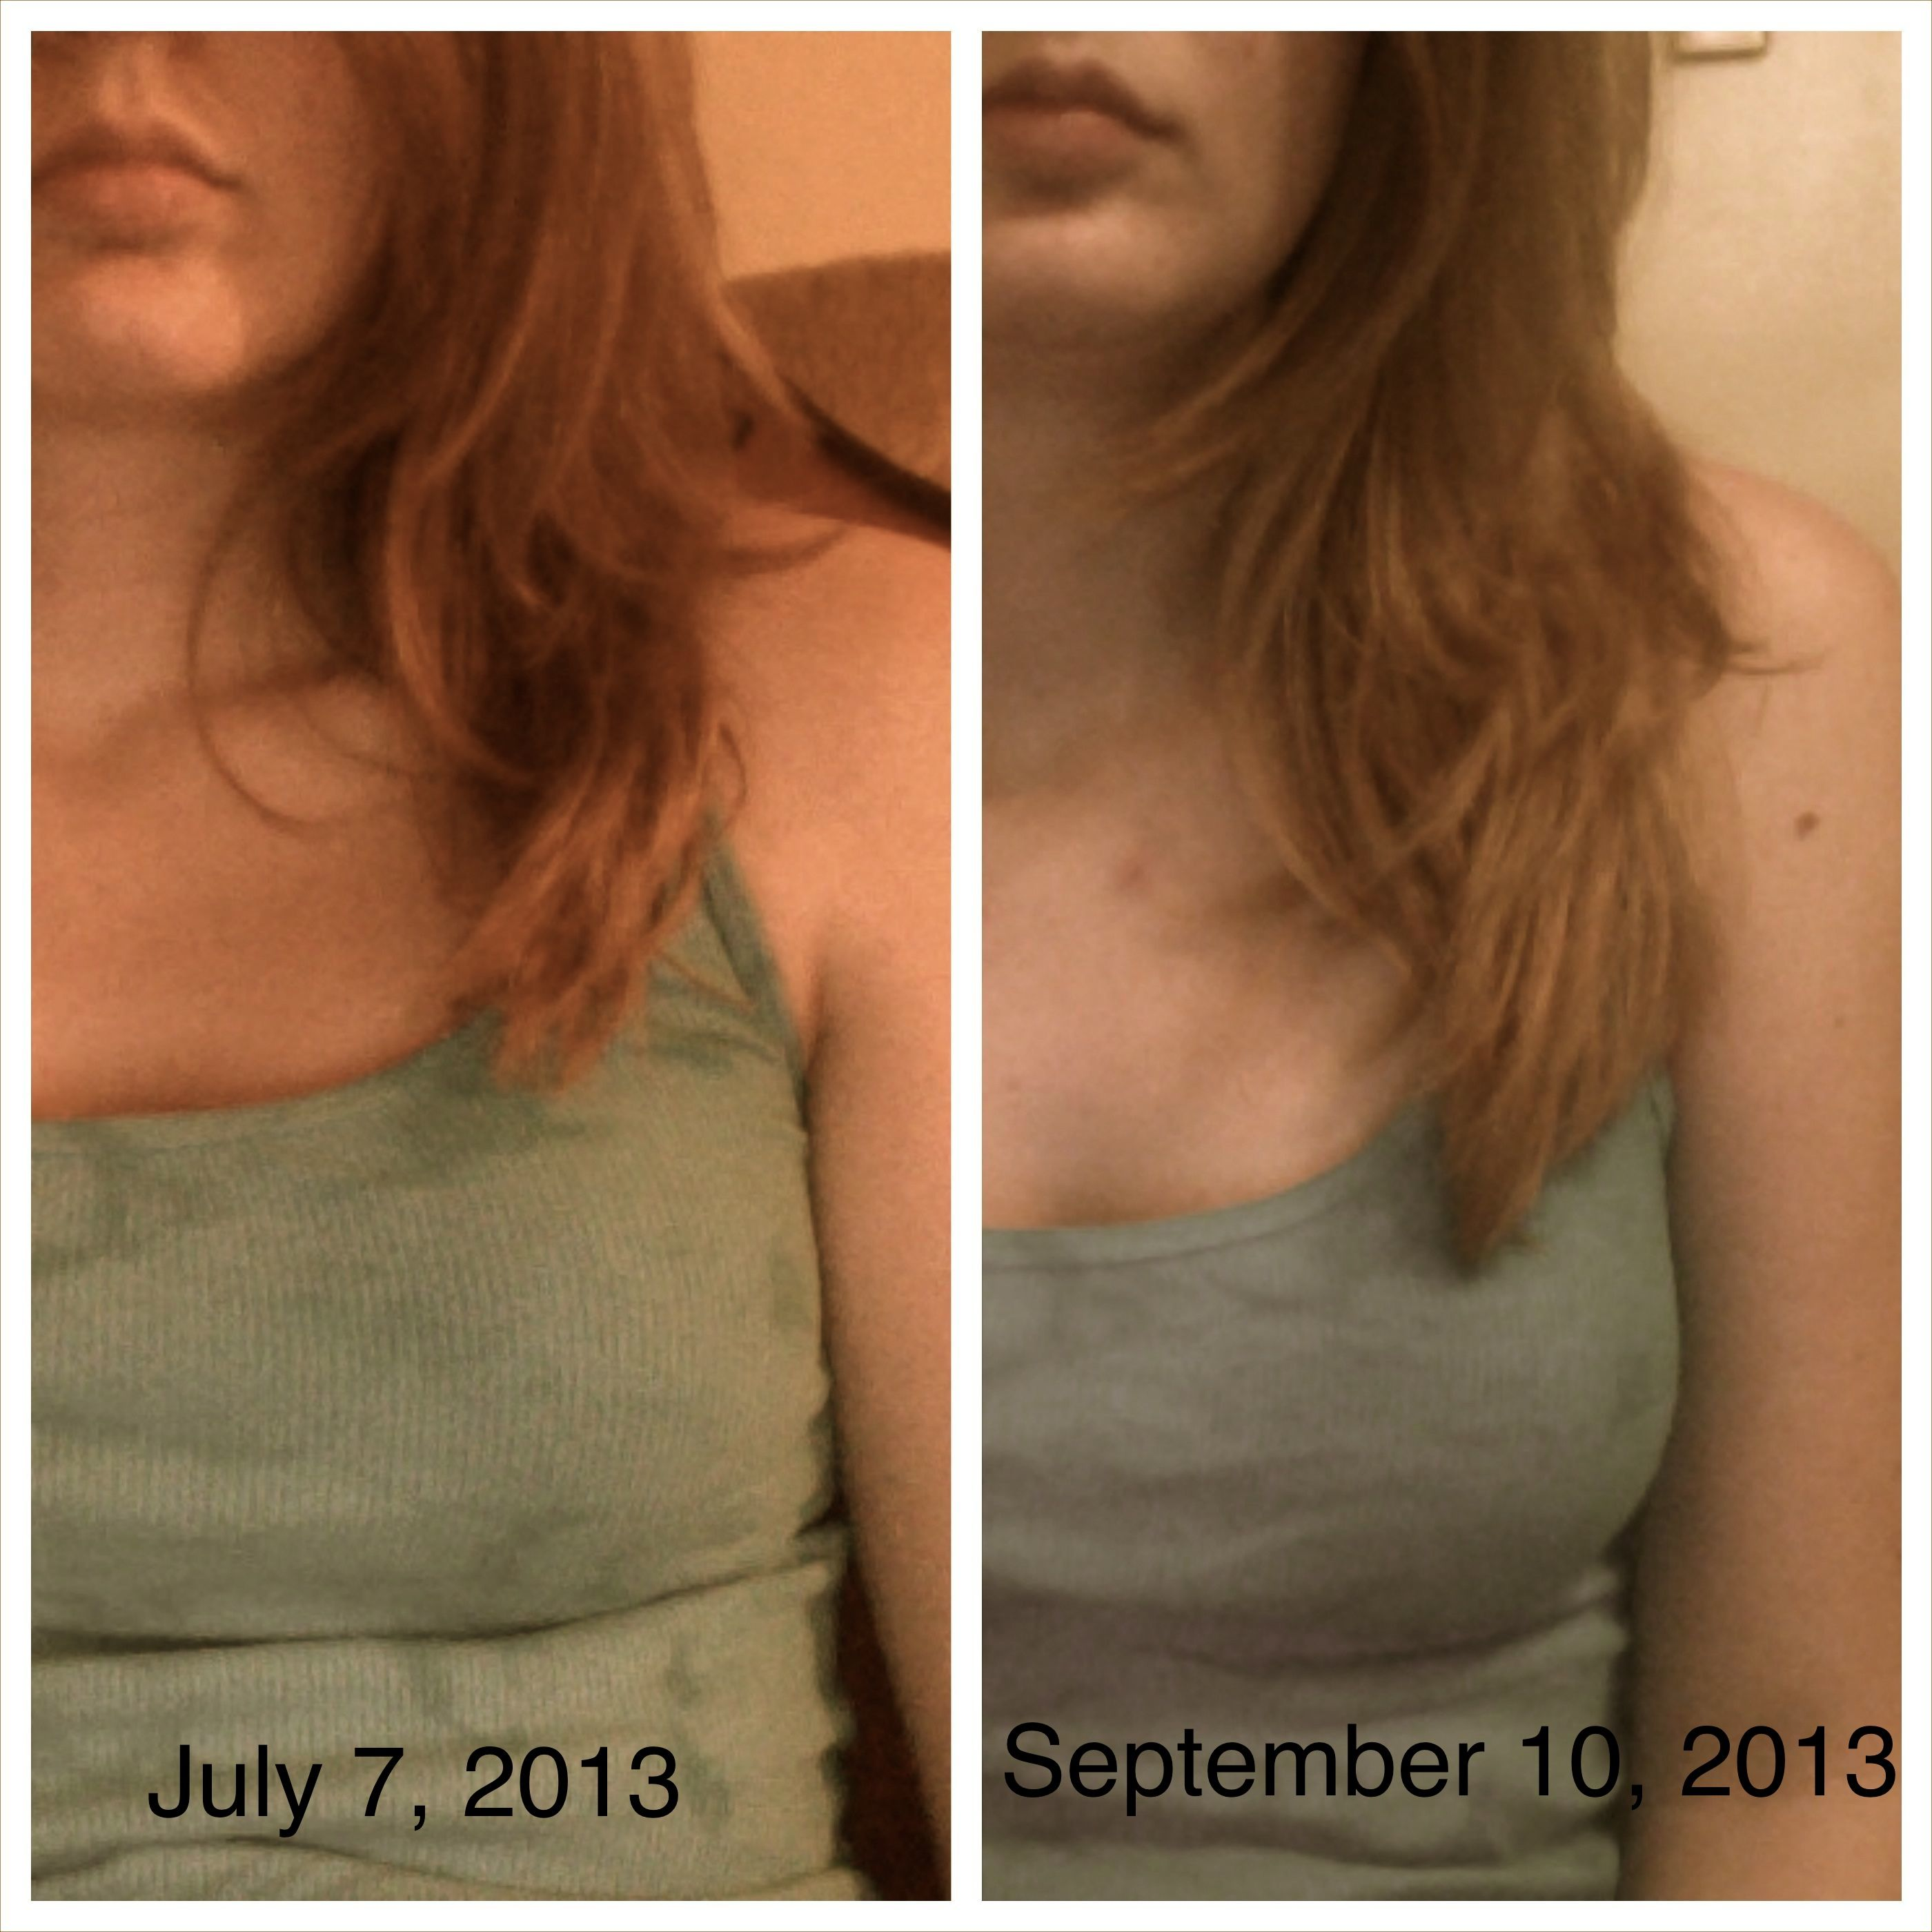 My hair growth results after finishing one bottle of Biotin 10,000 mcg.